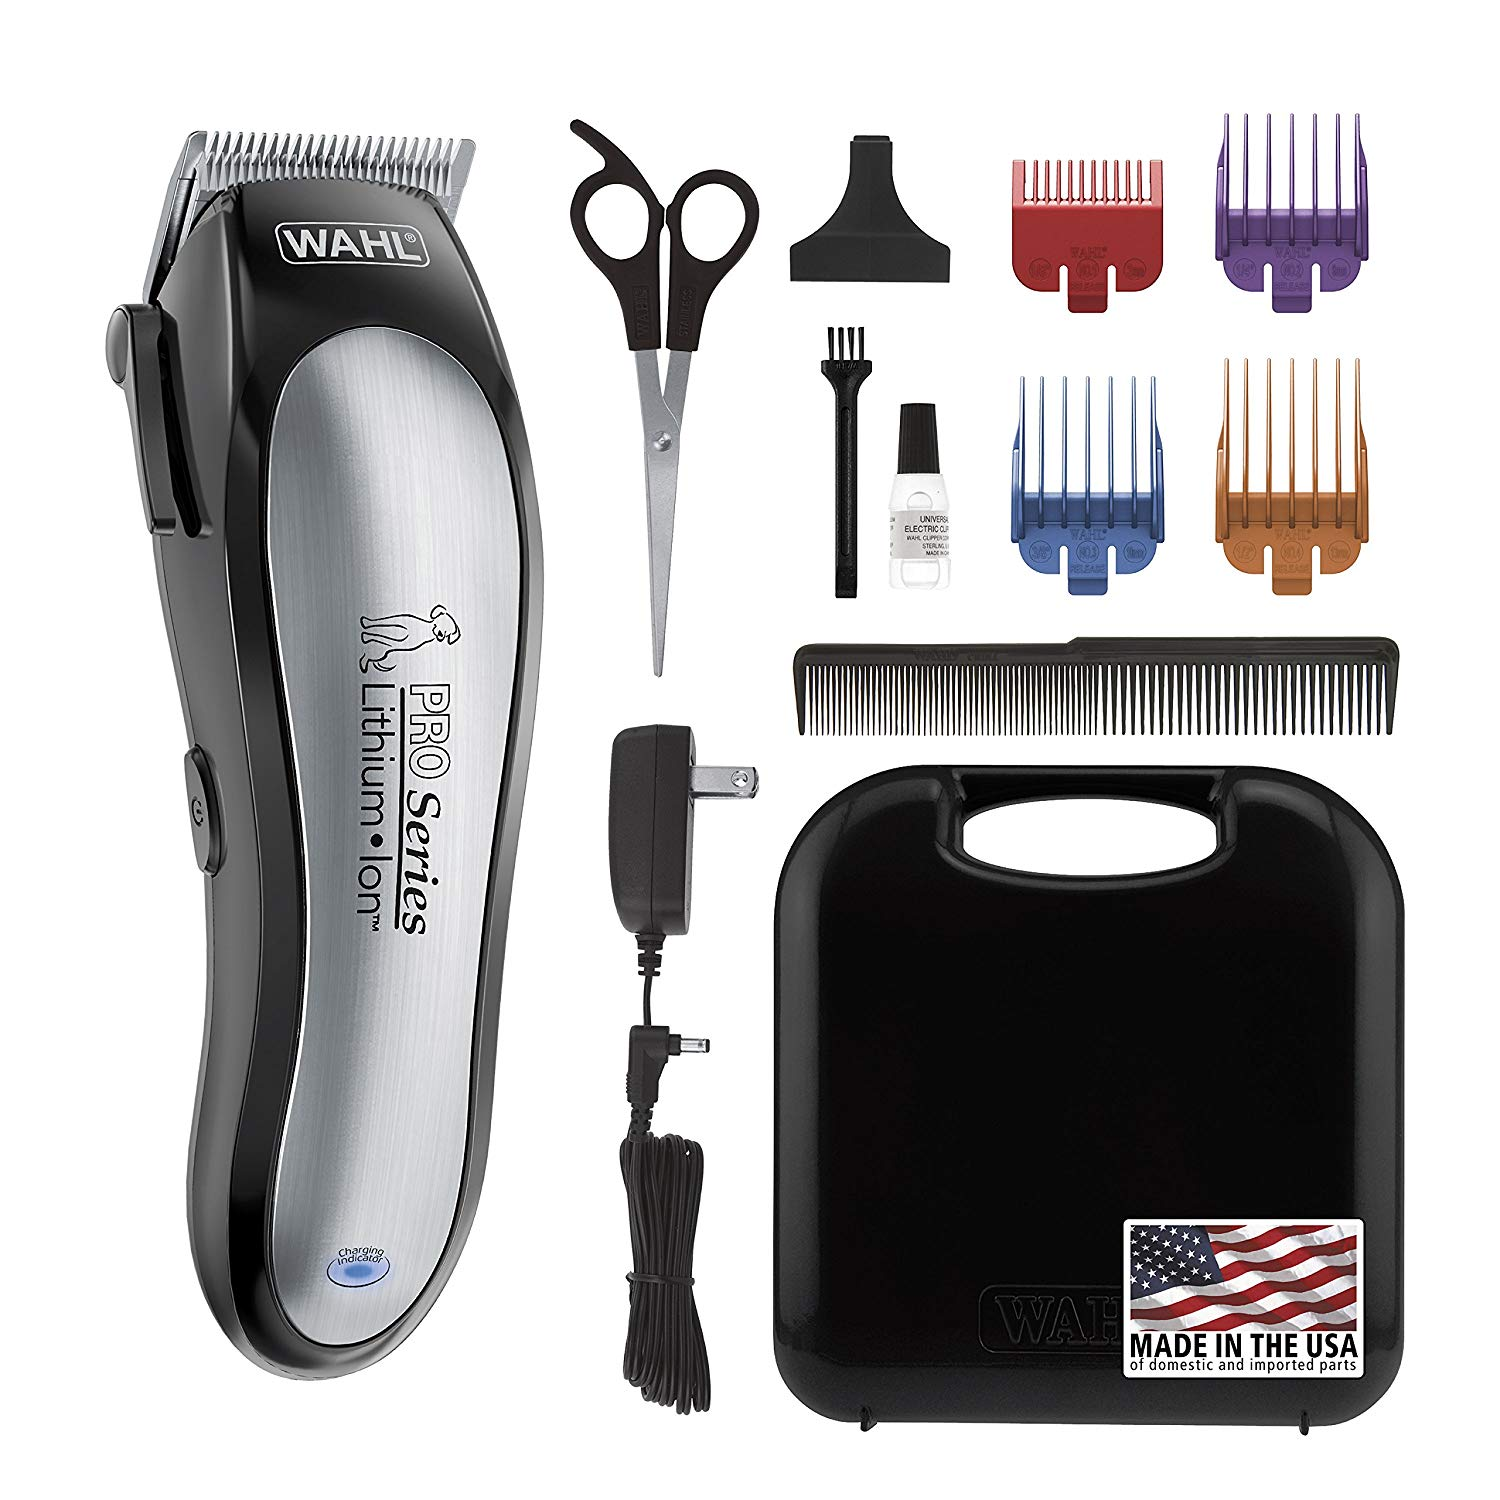 Wahl Home Pet Lithium Ion Pro Series Pet Clipper - Best wireless clipper